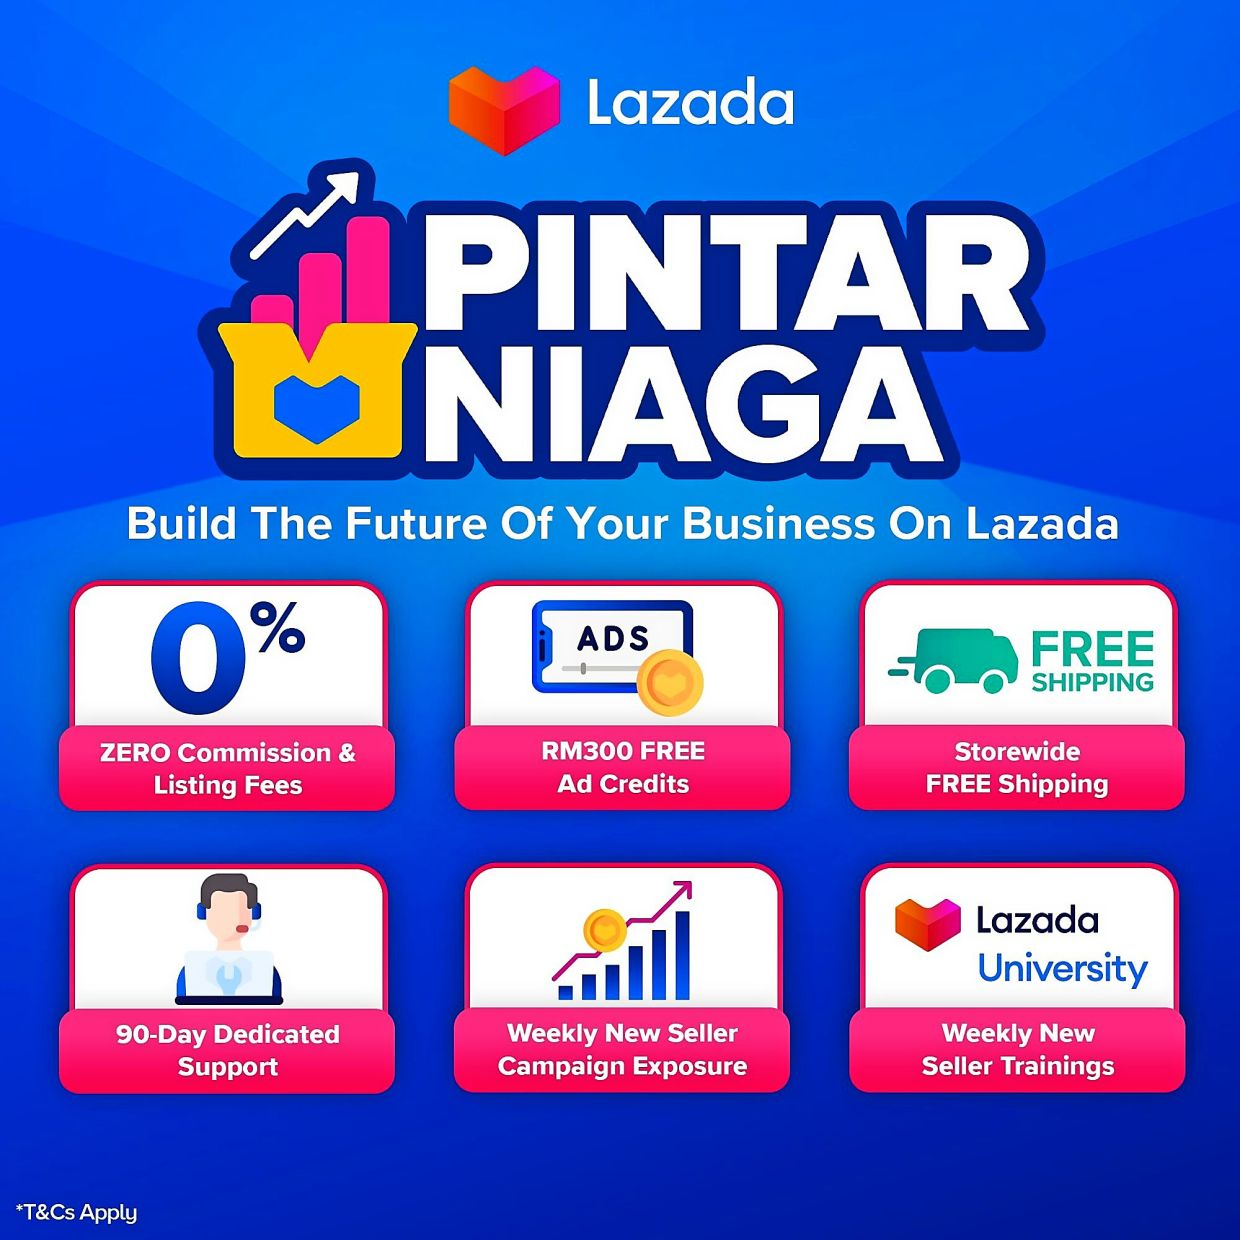 Pintar Niaga is to ease digital adoption among vendors and foster long-term business sustainability and growth for SMEs.